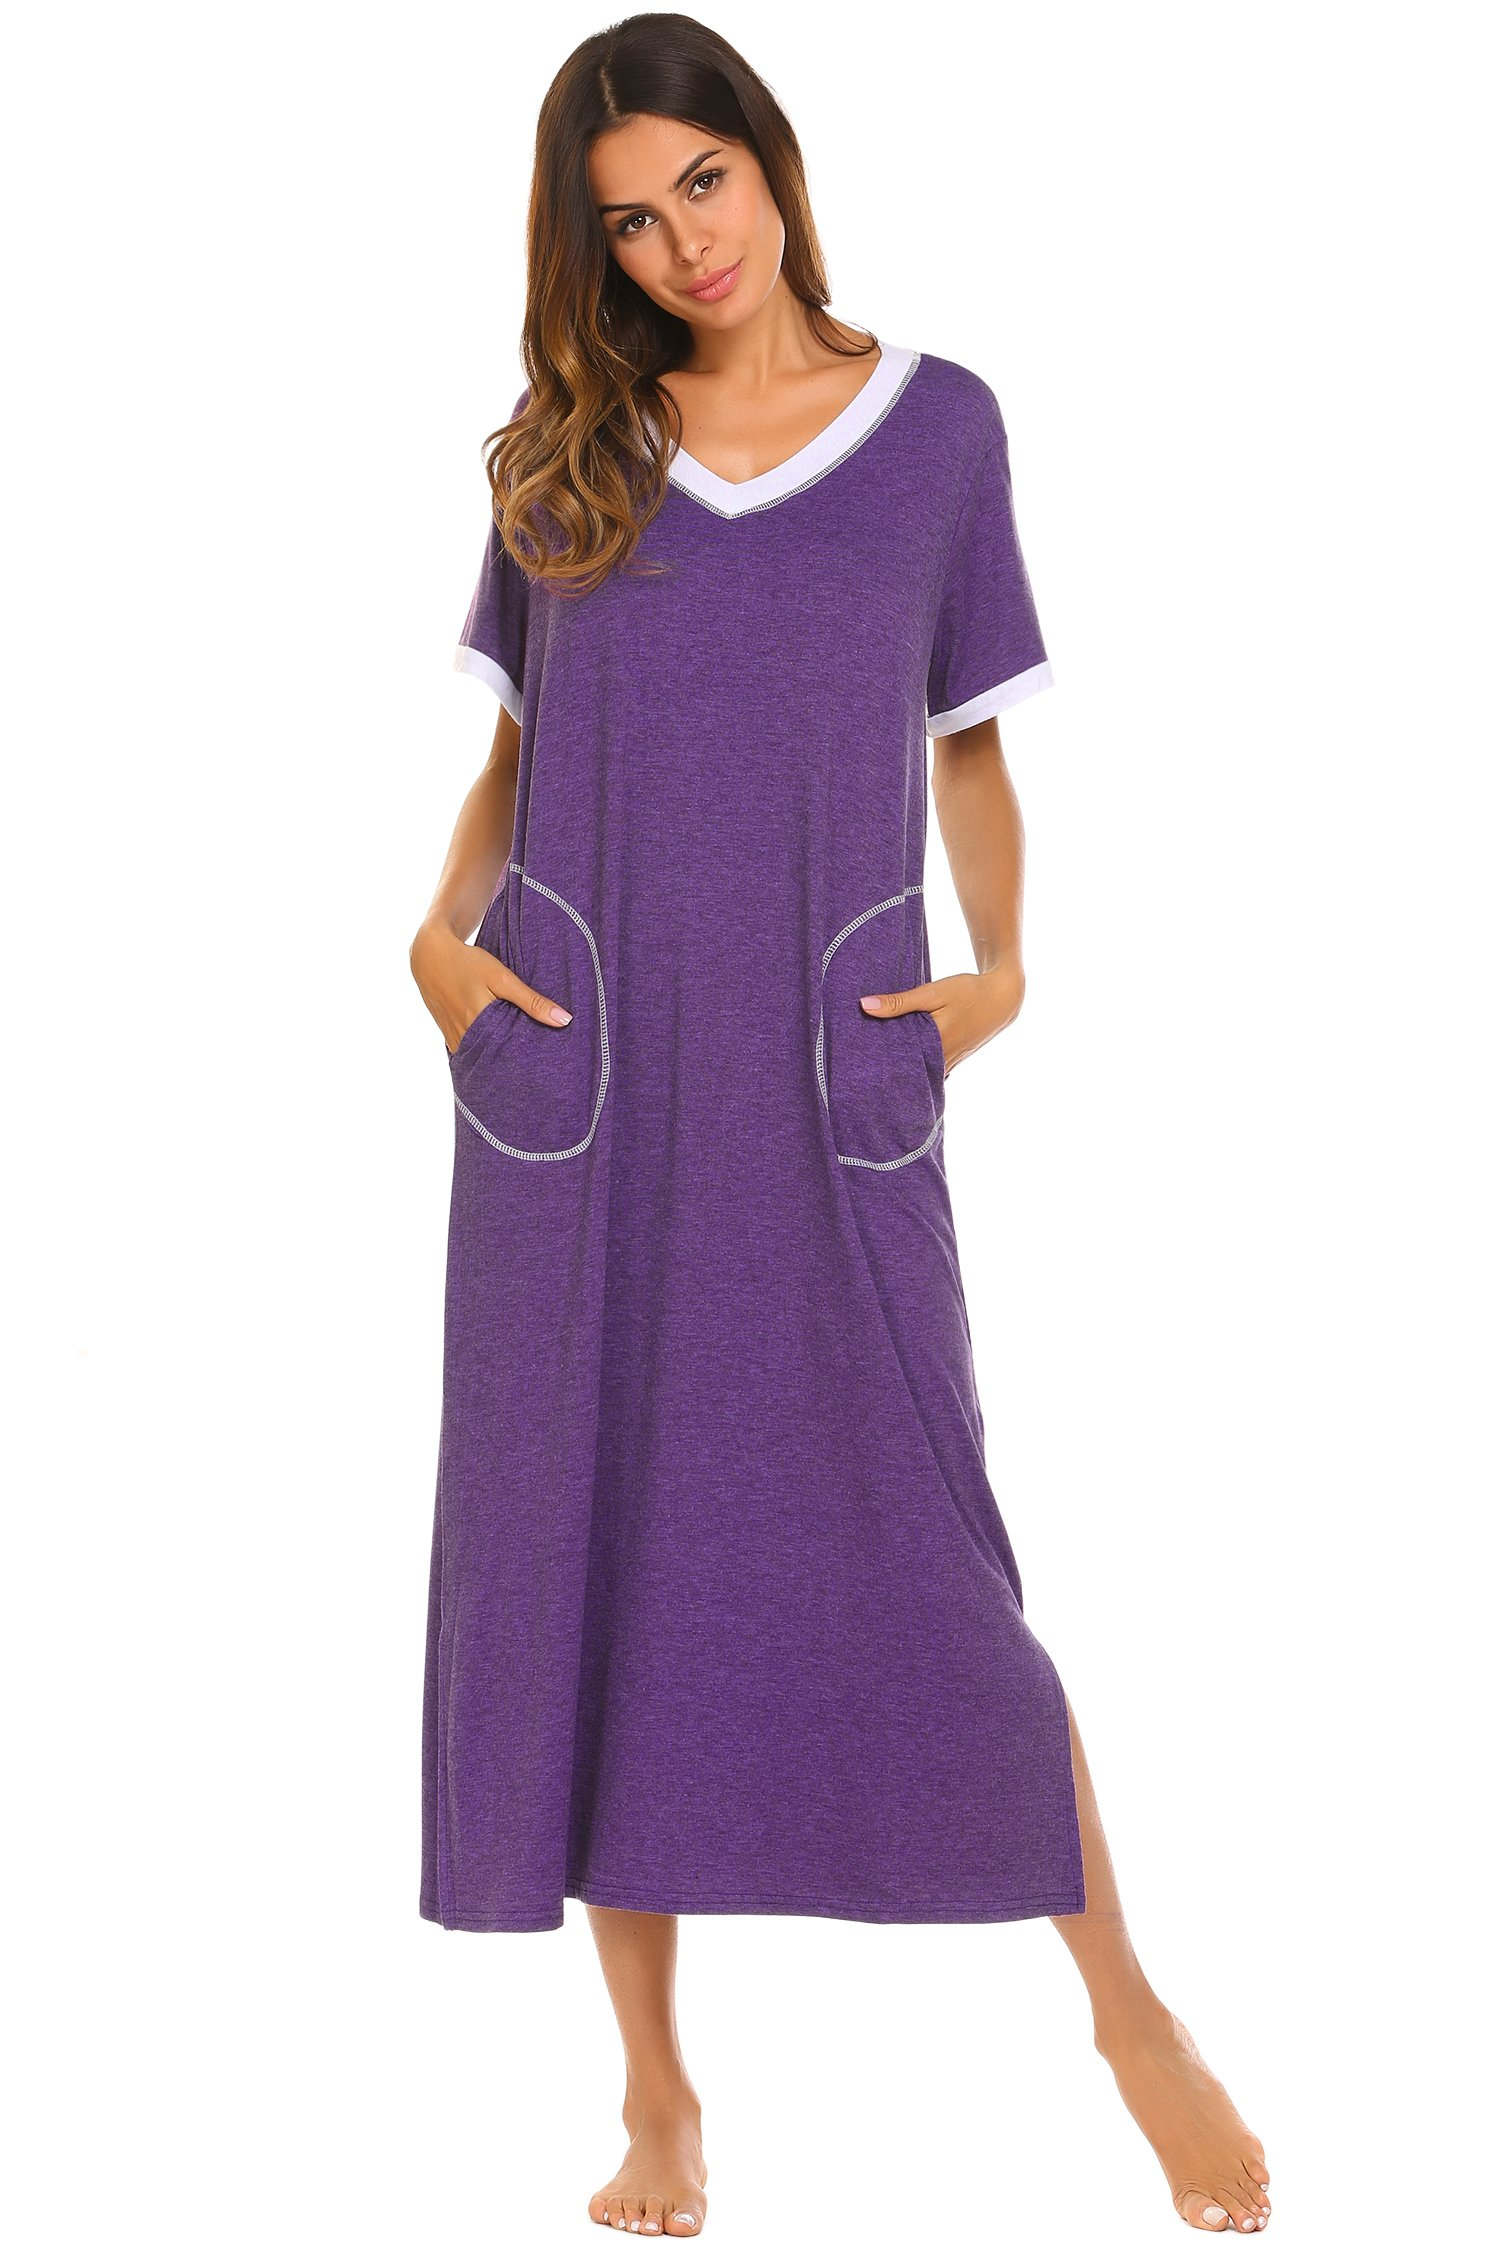 Ekouaer Loungewear Long Nightgown Women s Ultra-Soft Nightshirt Full Length  Sleepwear with Pocket 1f61c84e1